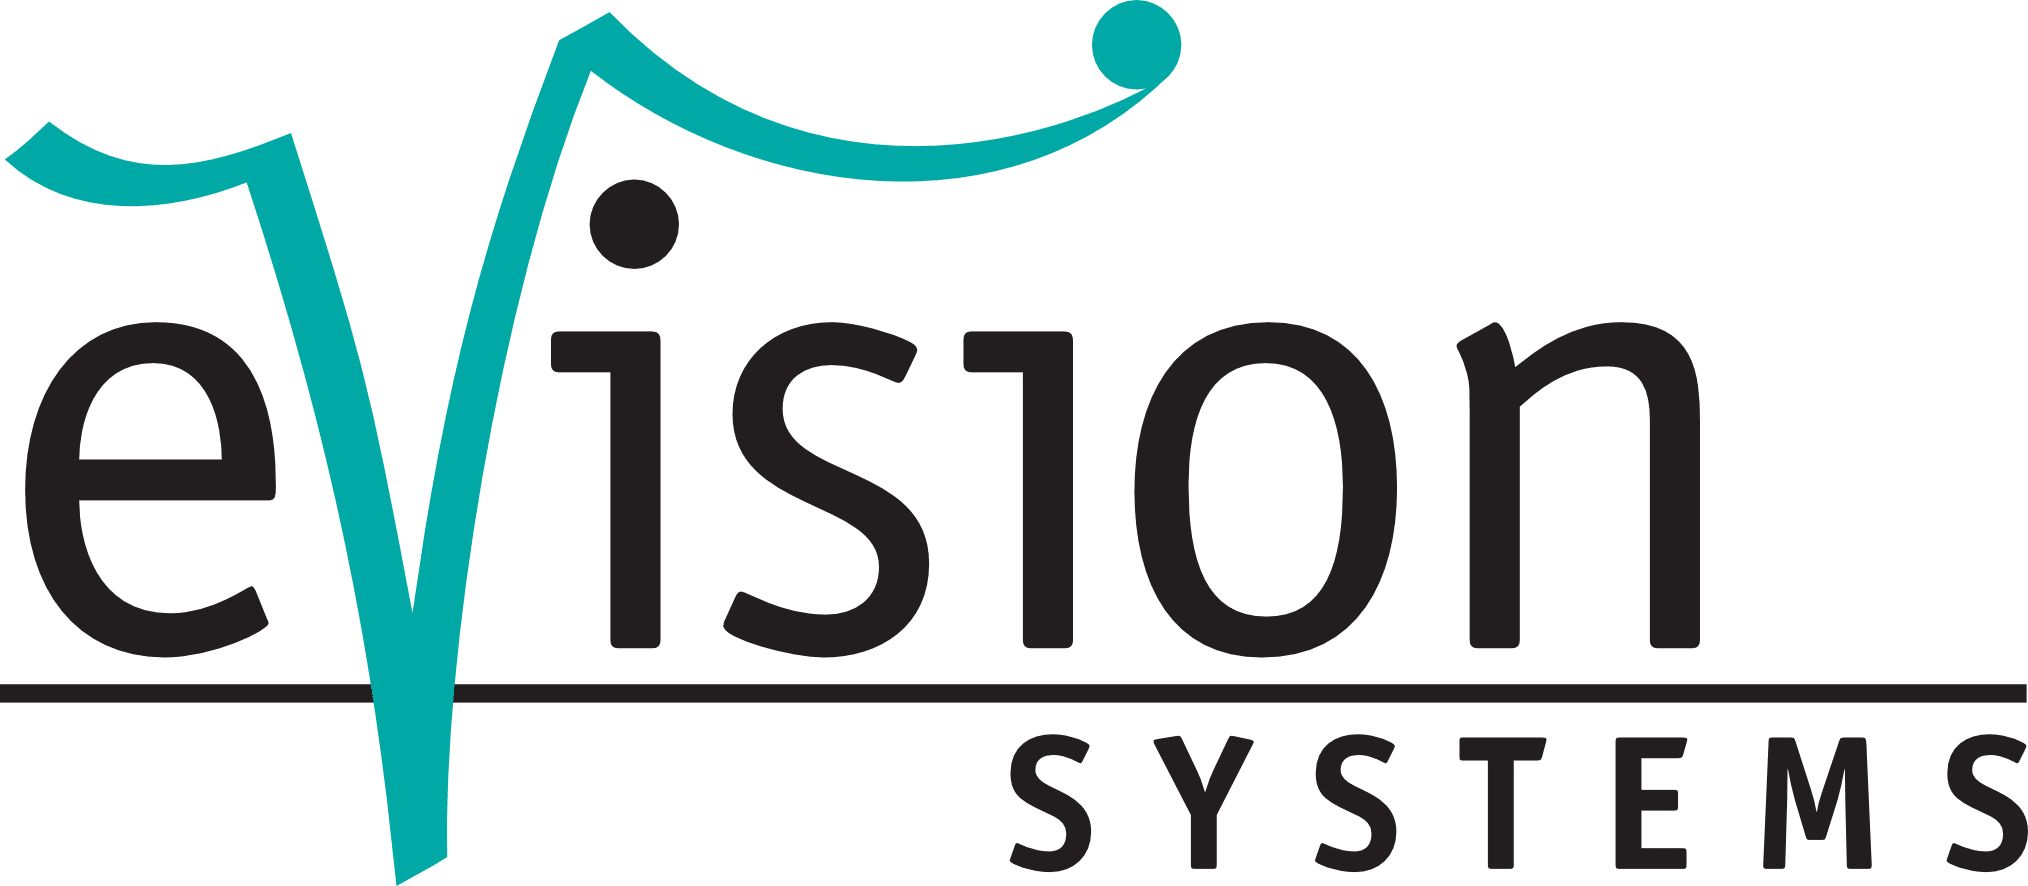 eVision Systems GmbH